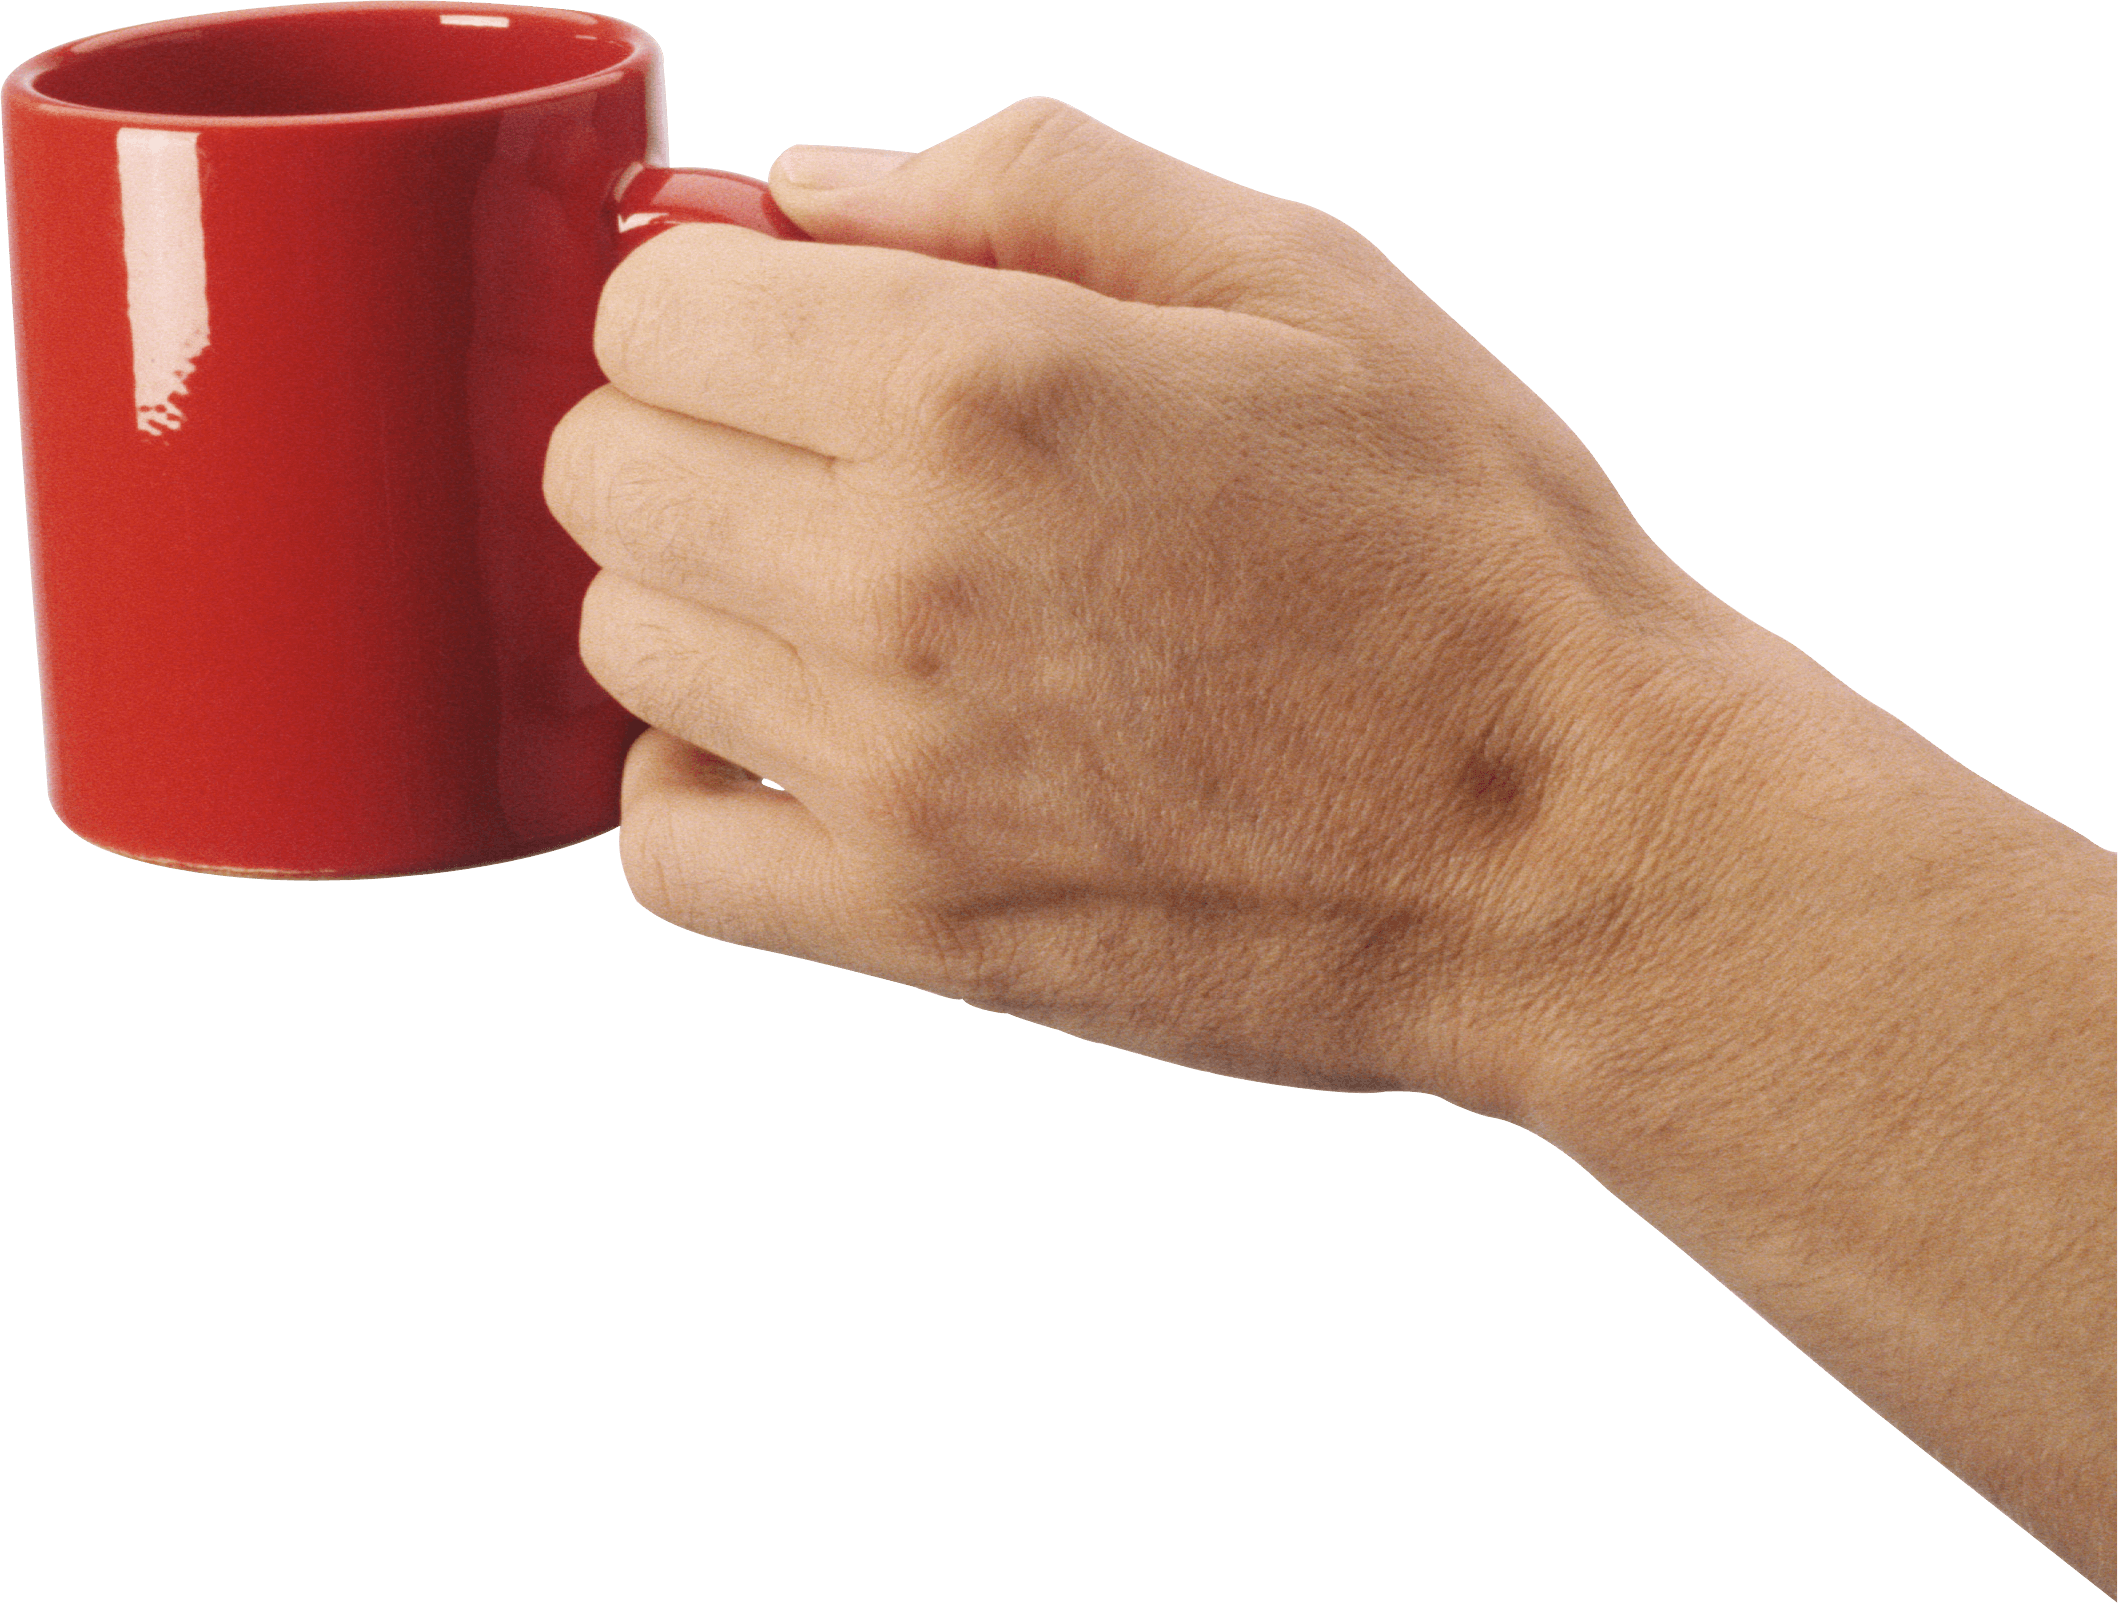 Holding cup png. Coffee mug hand transparent